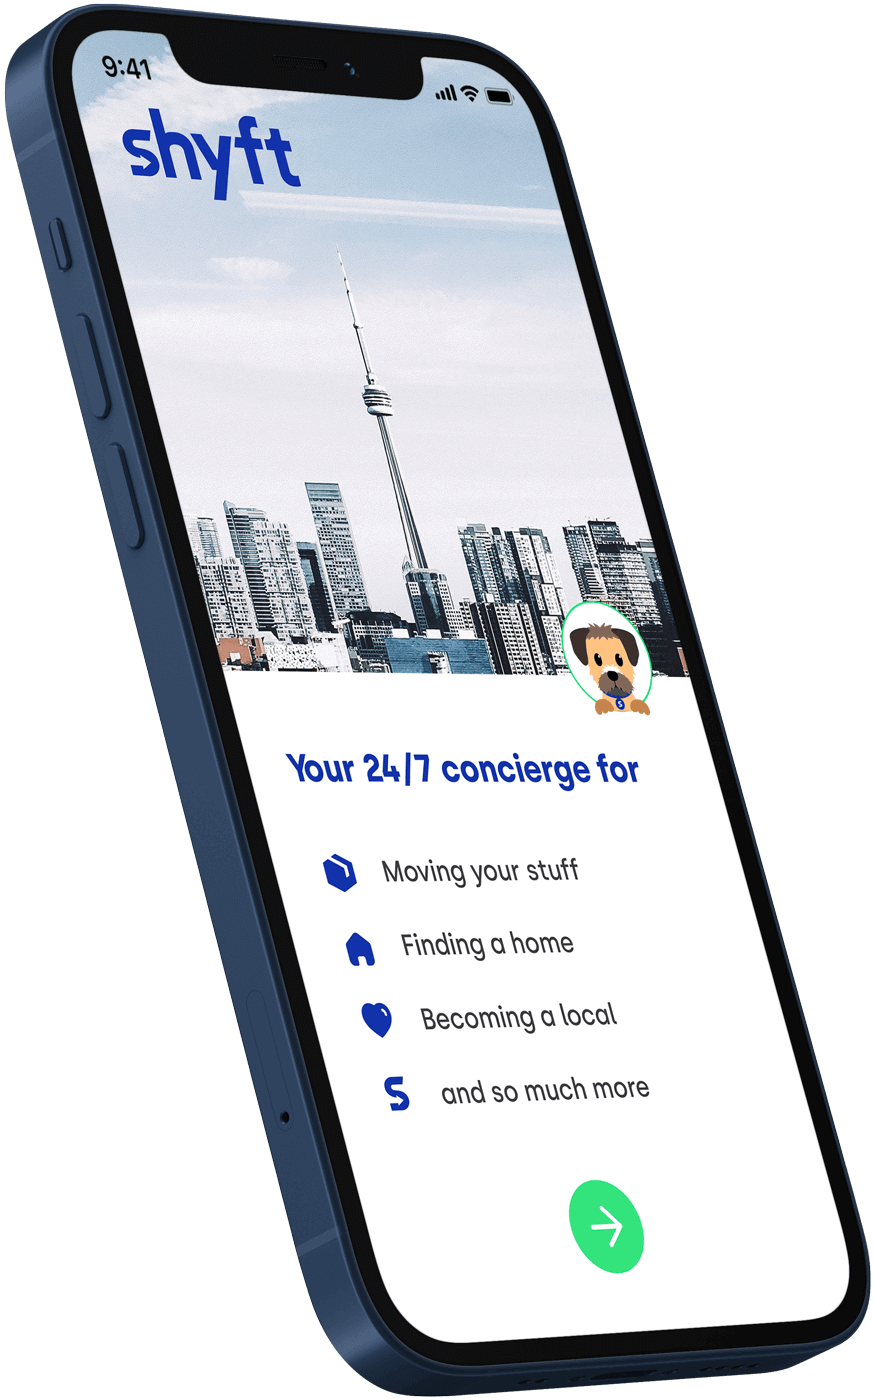 A phone presenting Shyft's moving app with personal concierge services for move management